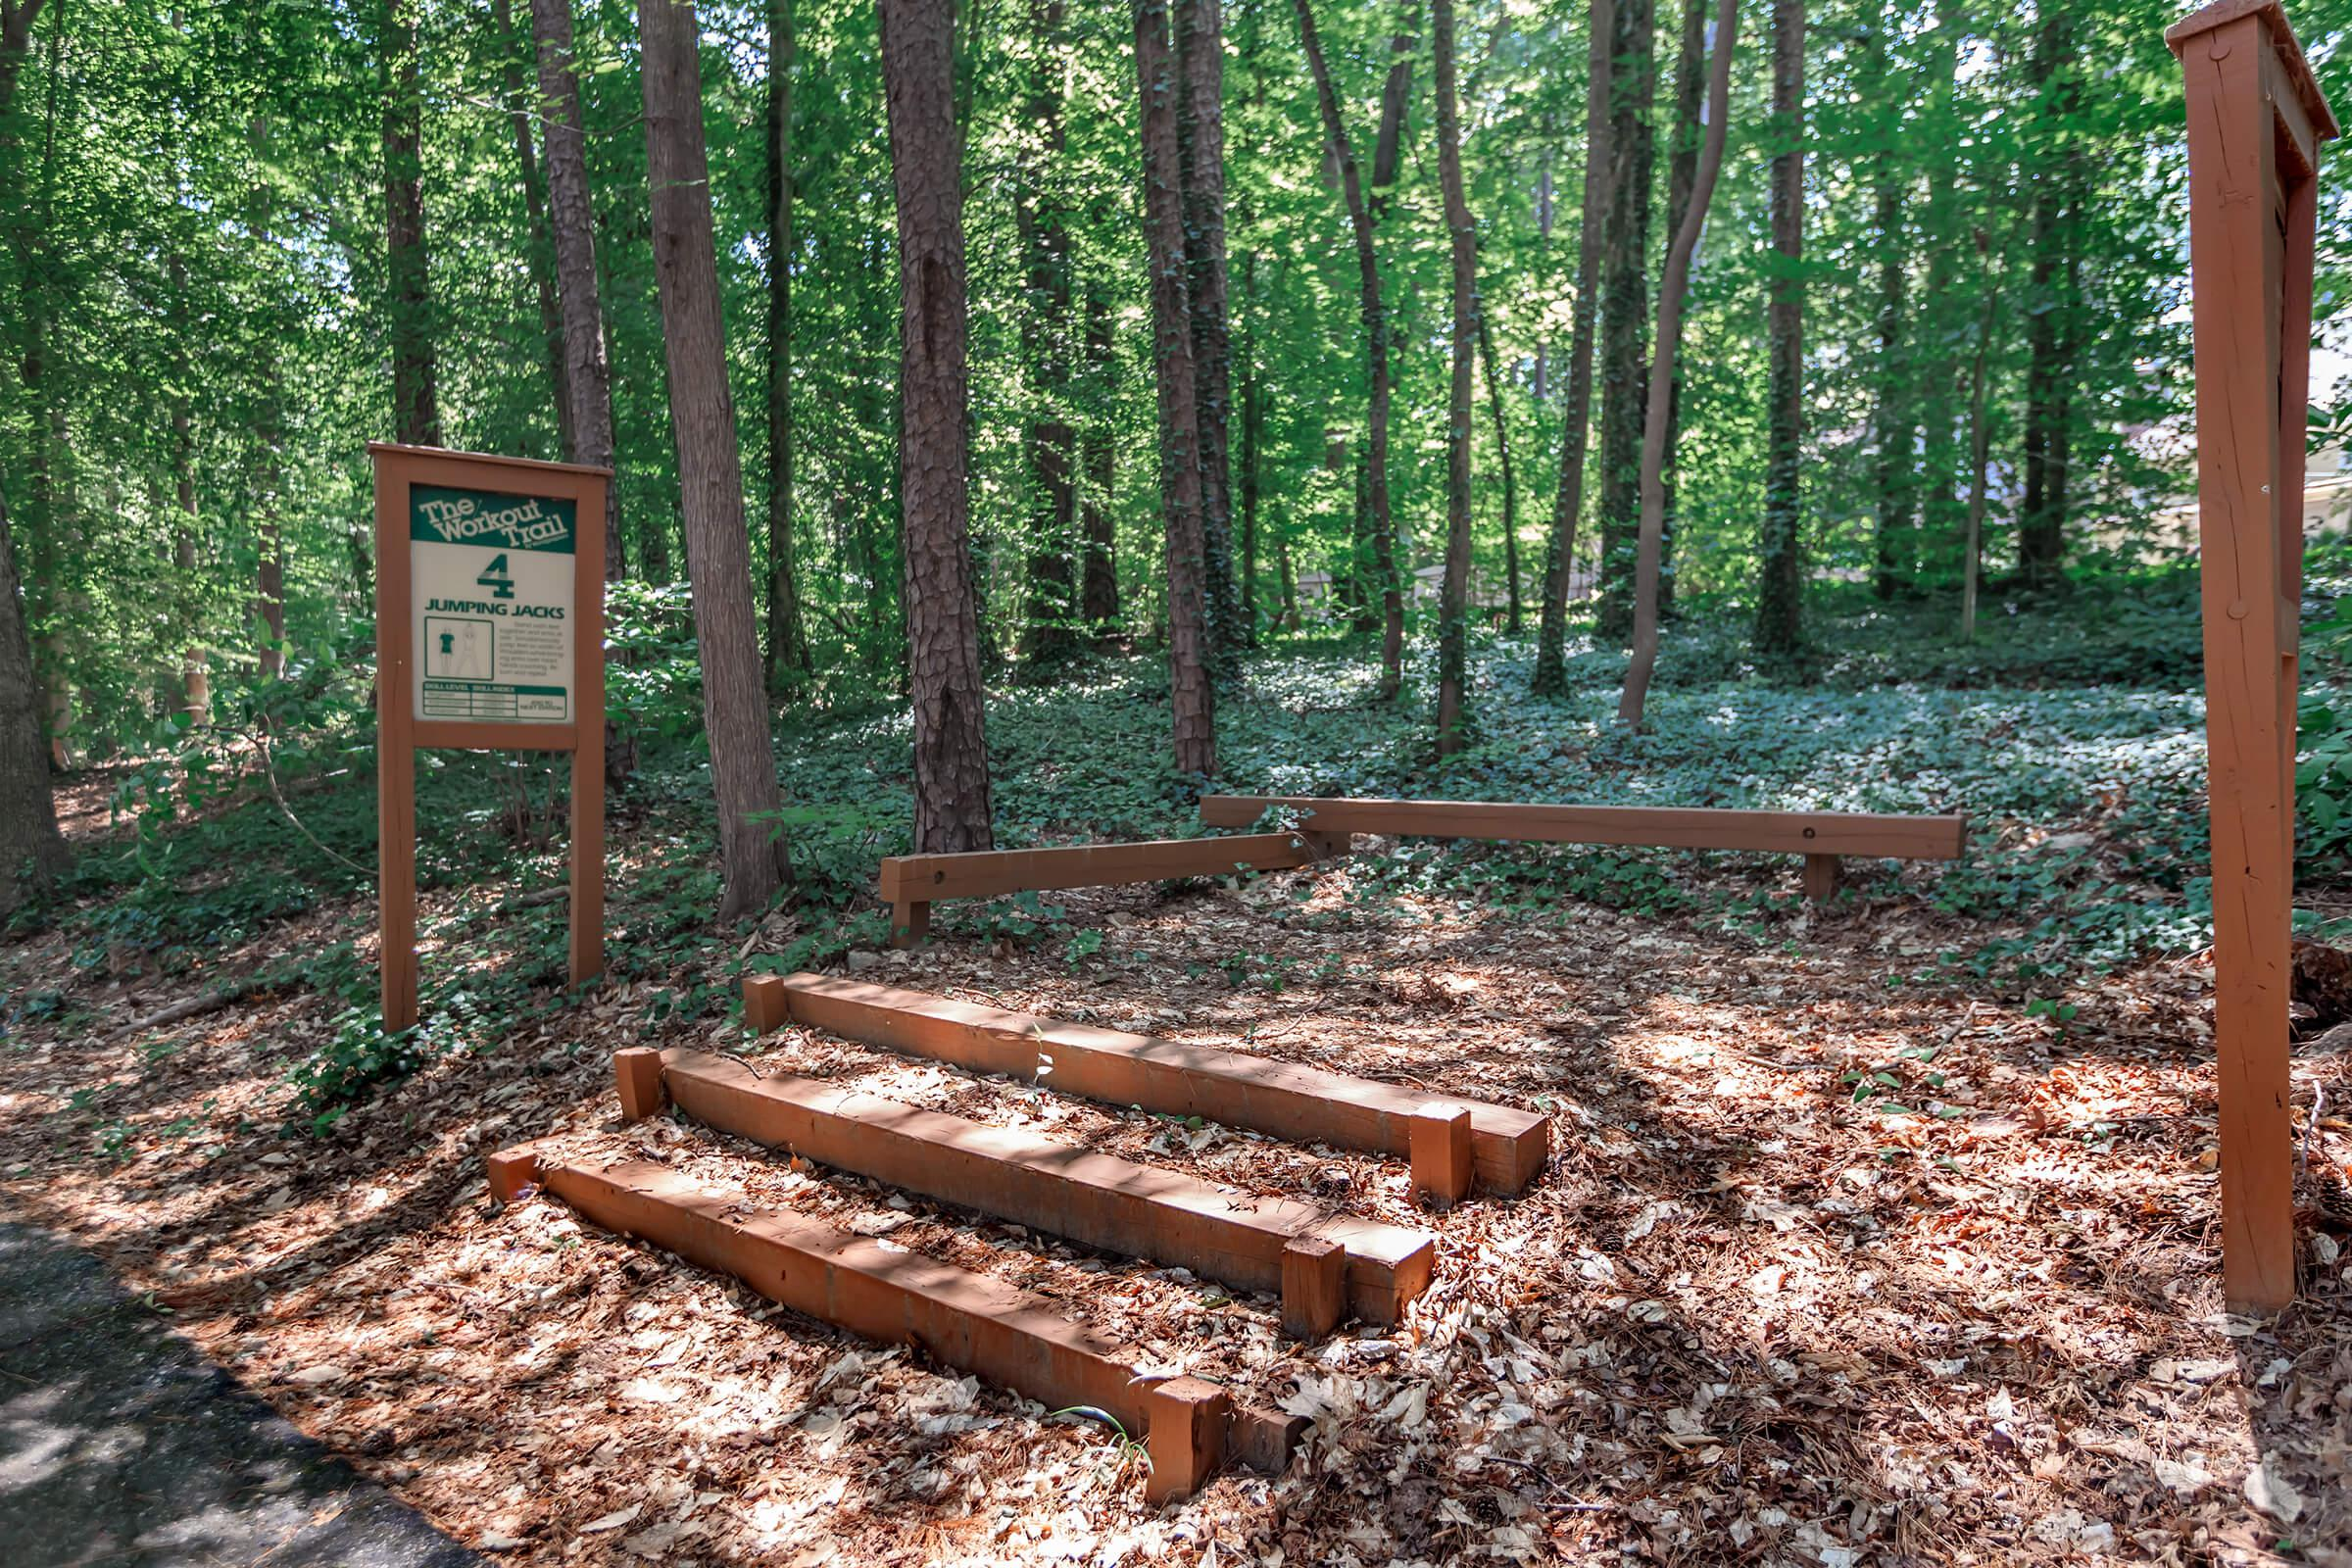 a wooden bench next to a forest